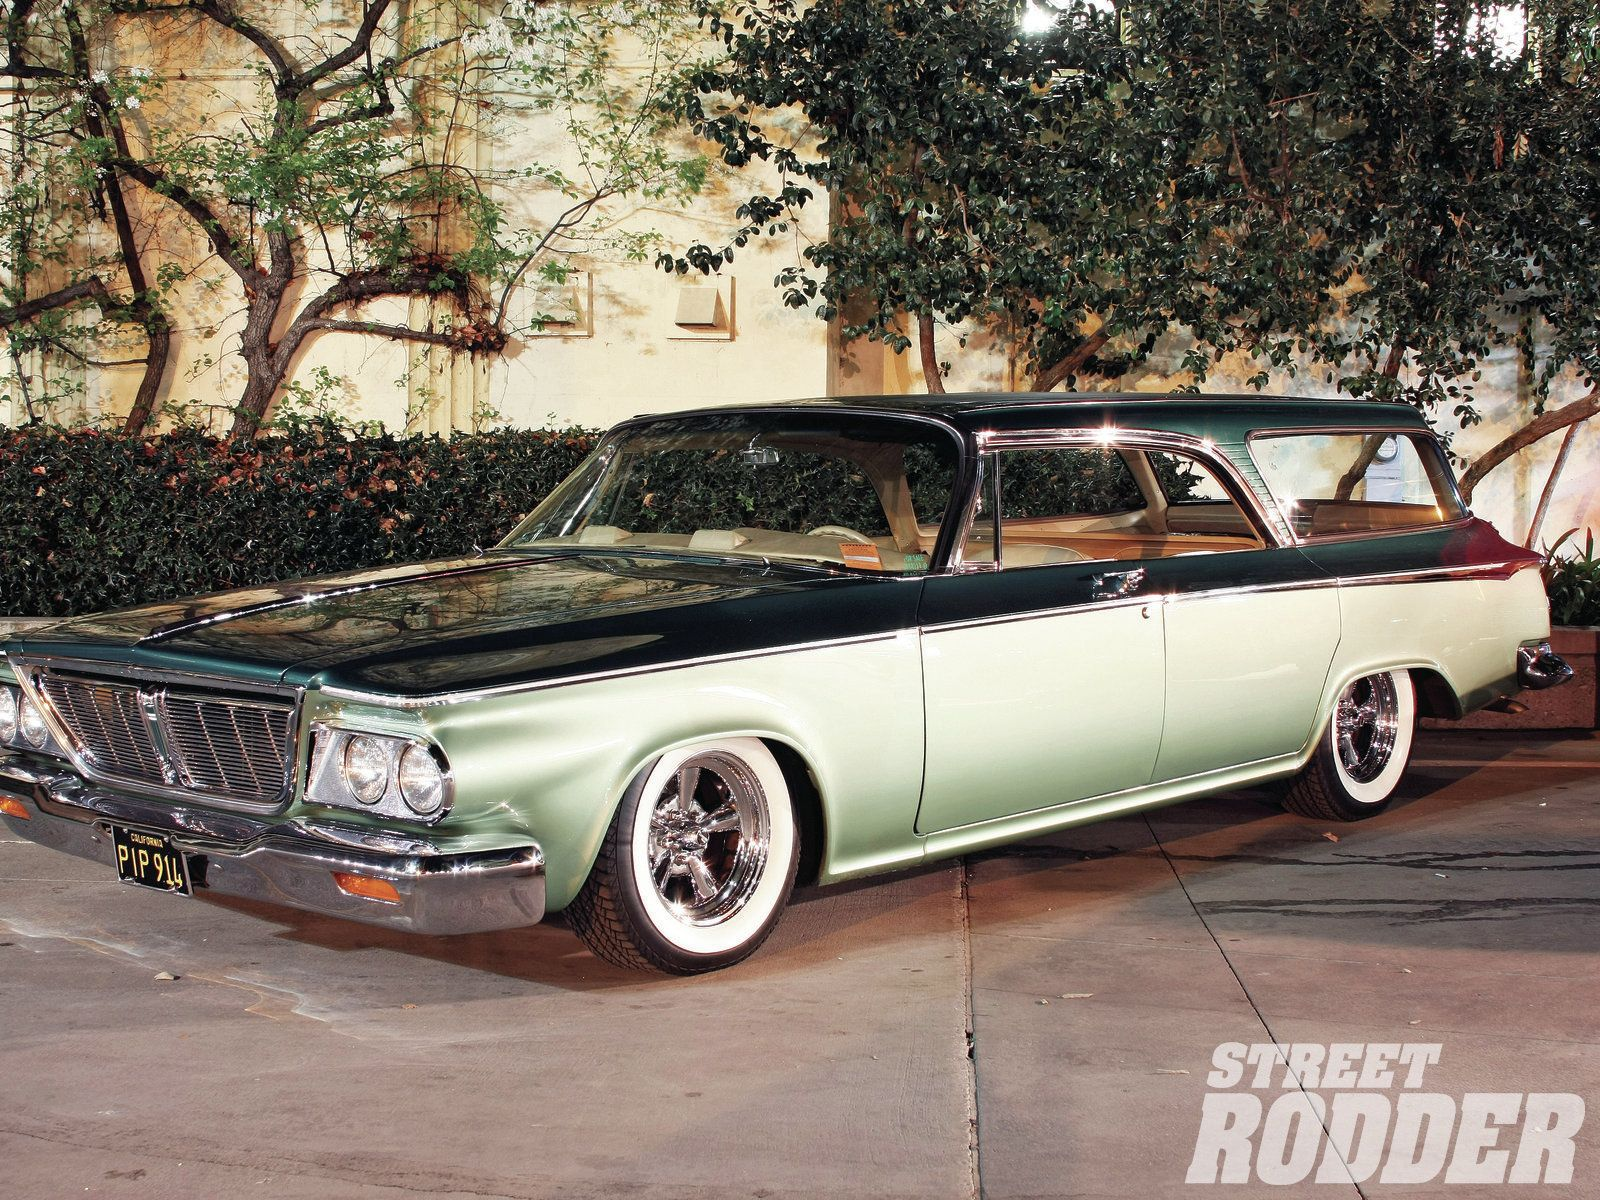 4a0264f94b06b4fb1e1a444663e1cca0 Great Description About 1955 Chrysler 300 for Sale with Inspiring Images Cars Review